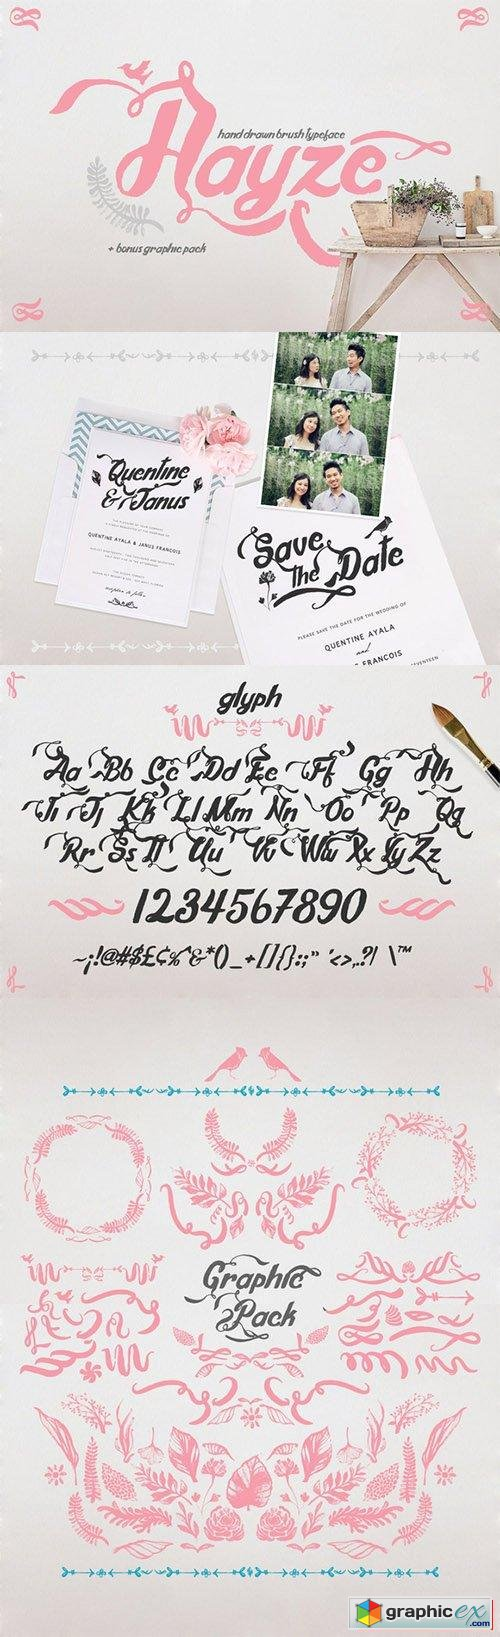 Hayze - Hand Drawn Bush Typeface Font